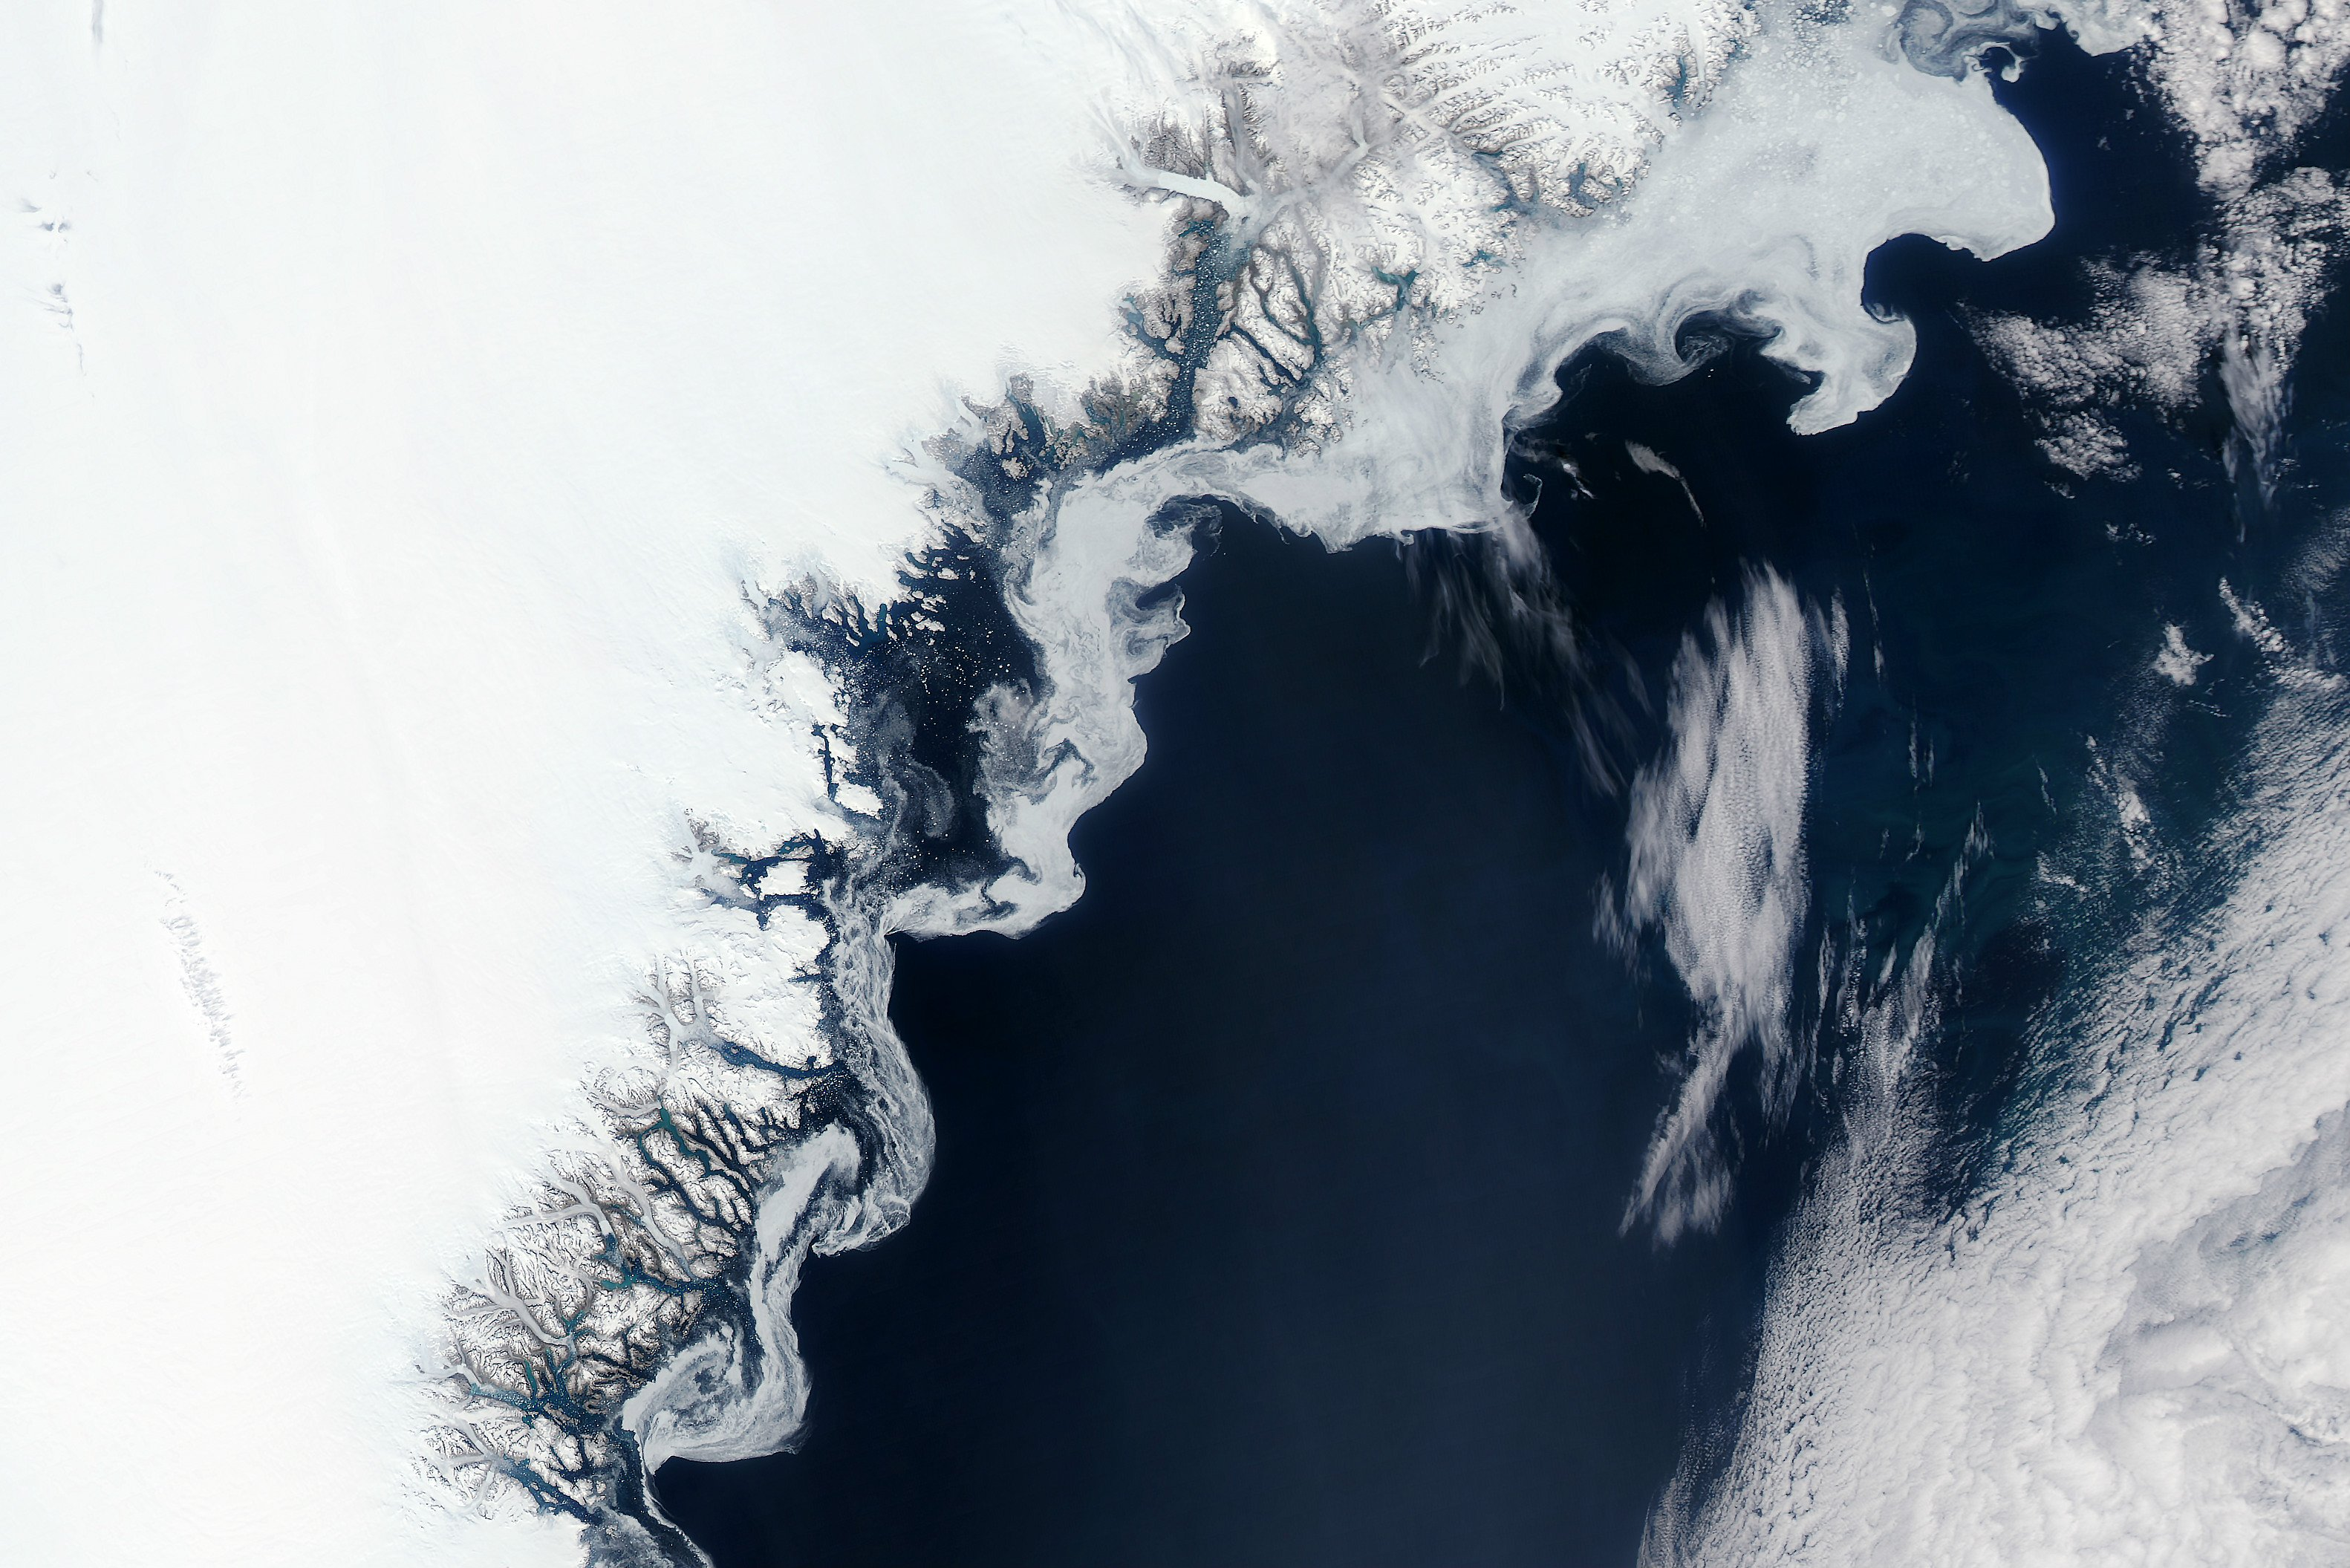 Scientists are trying to predict the impacts of this winter's weird Arctic weather